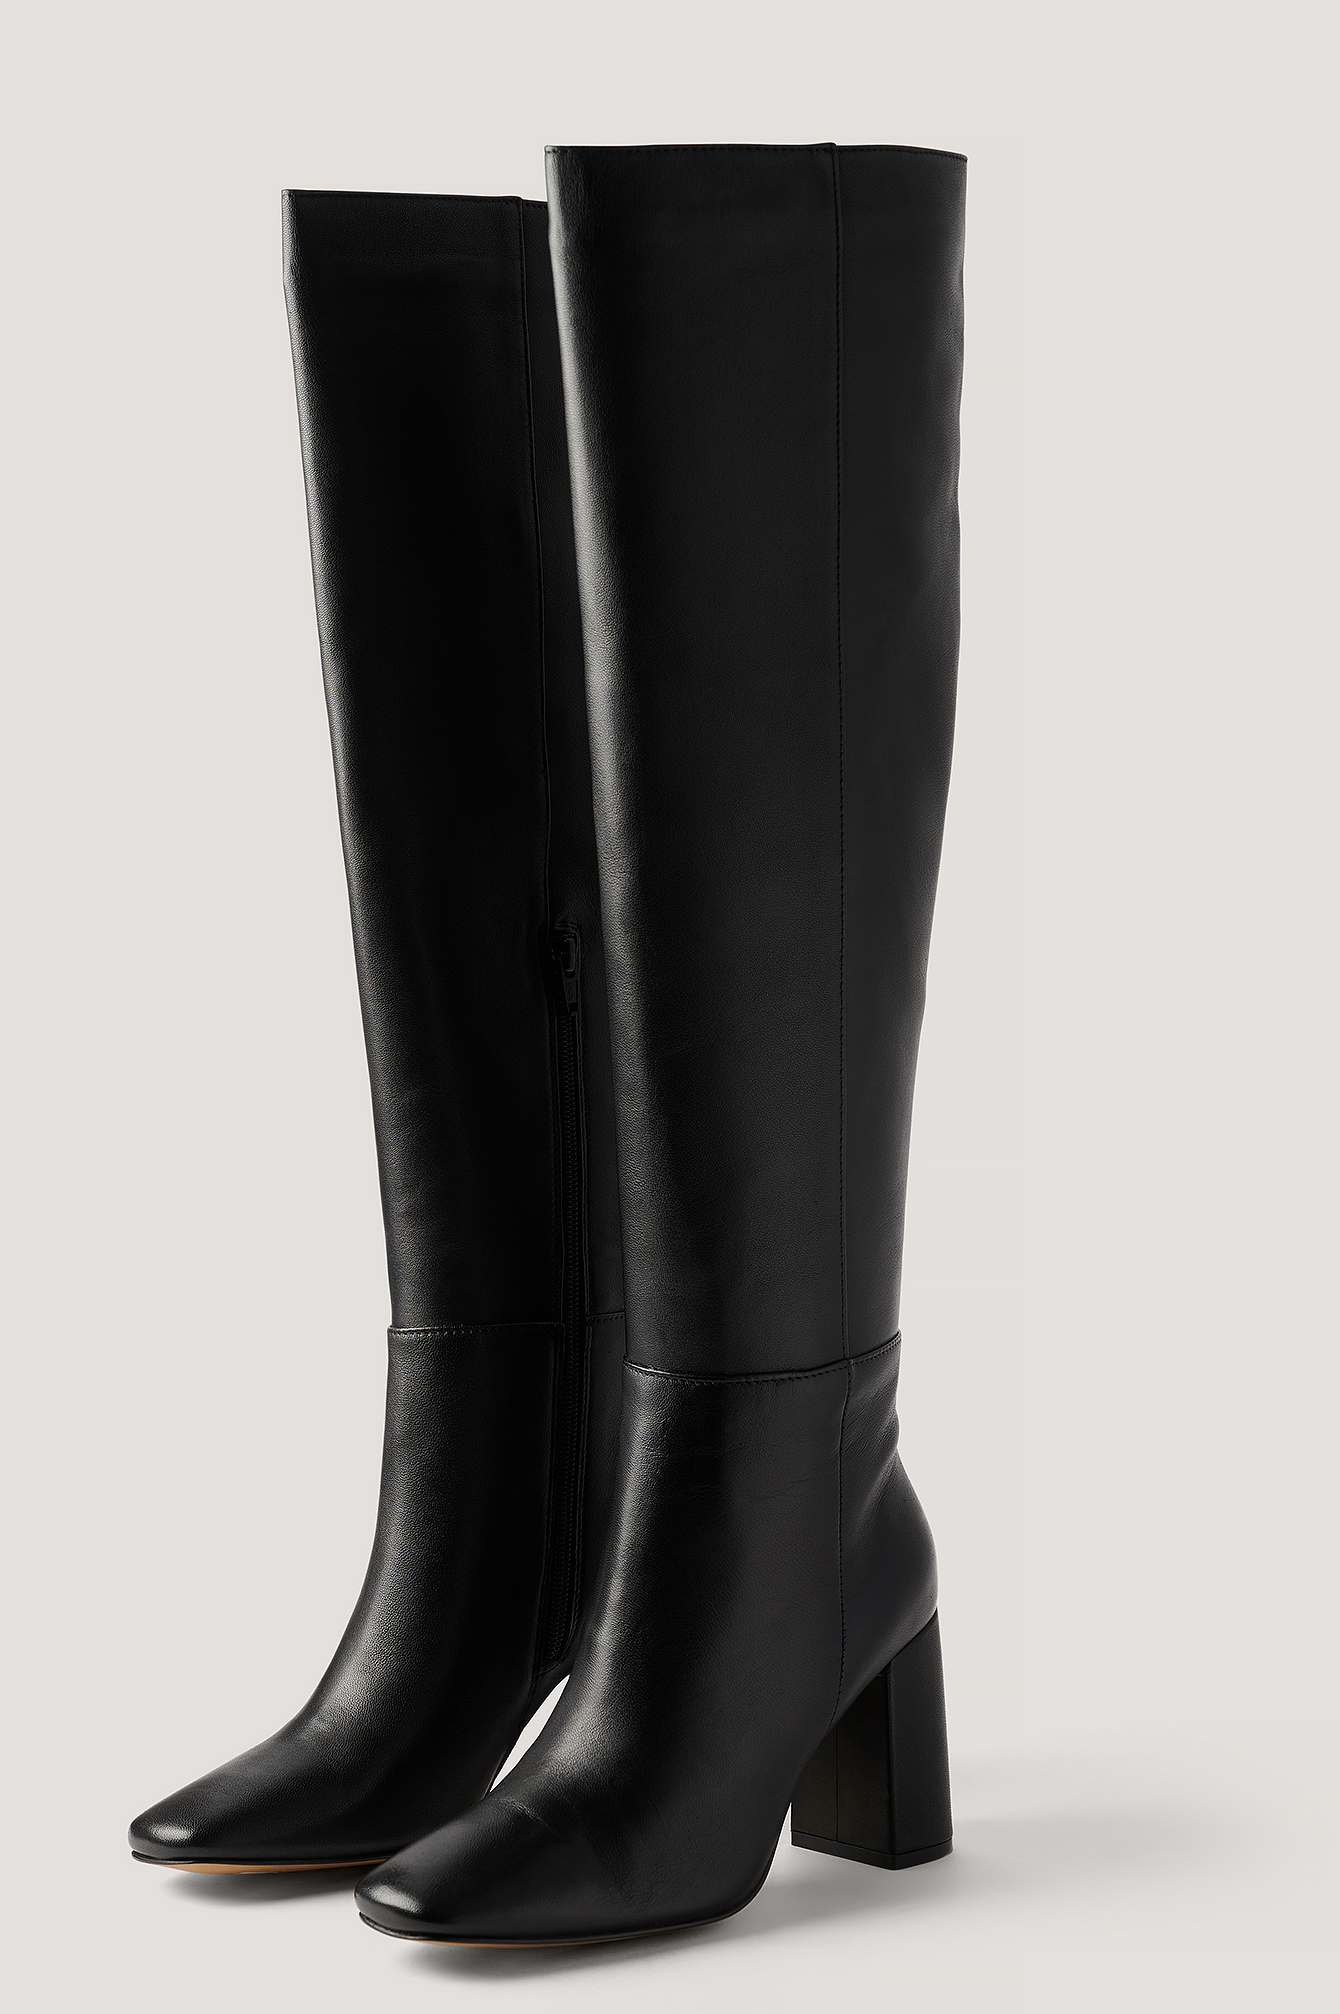 Black Knee High Leather Boots